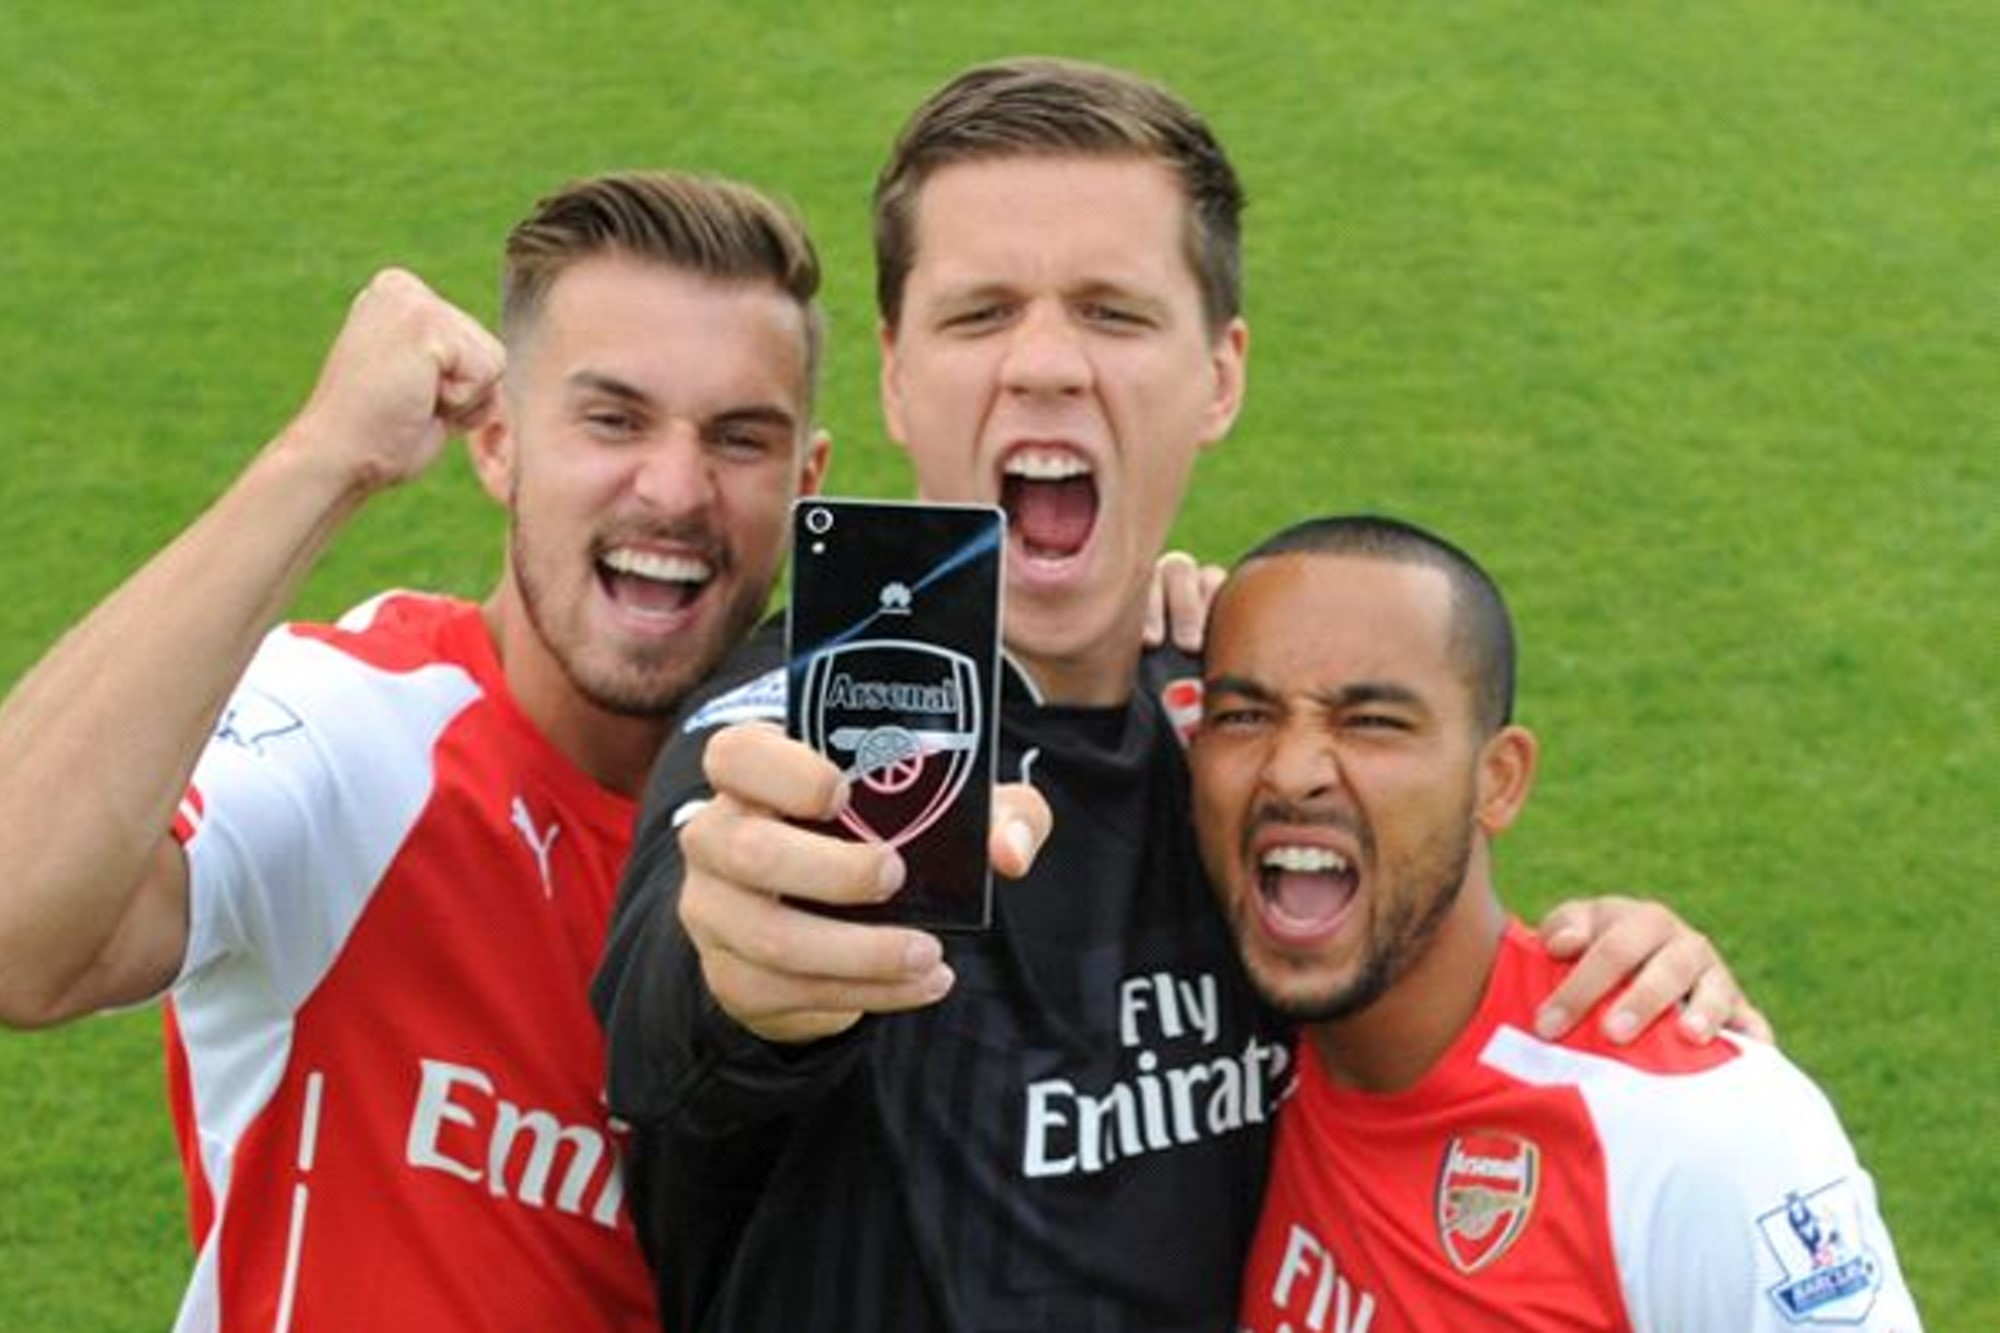 Arsenal line up SHOCK move to re-sign top player they should never have let go